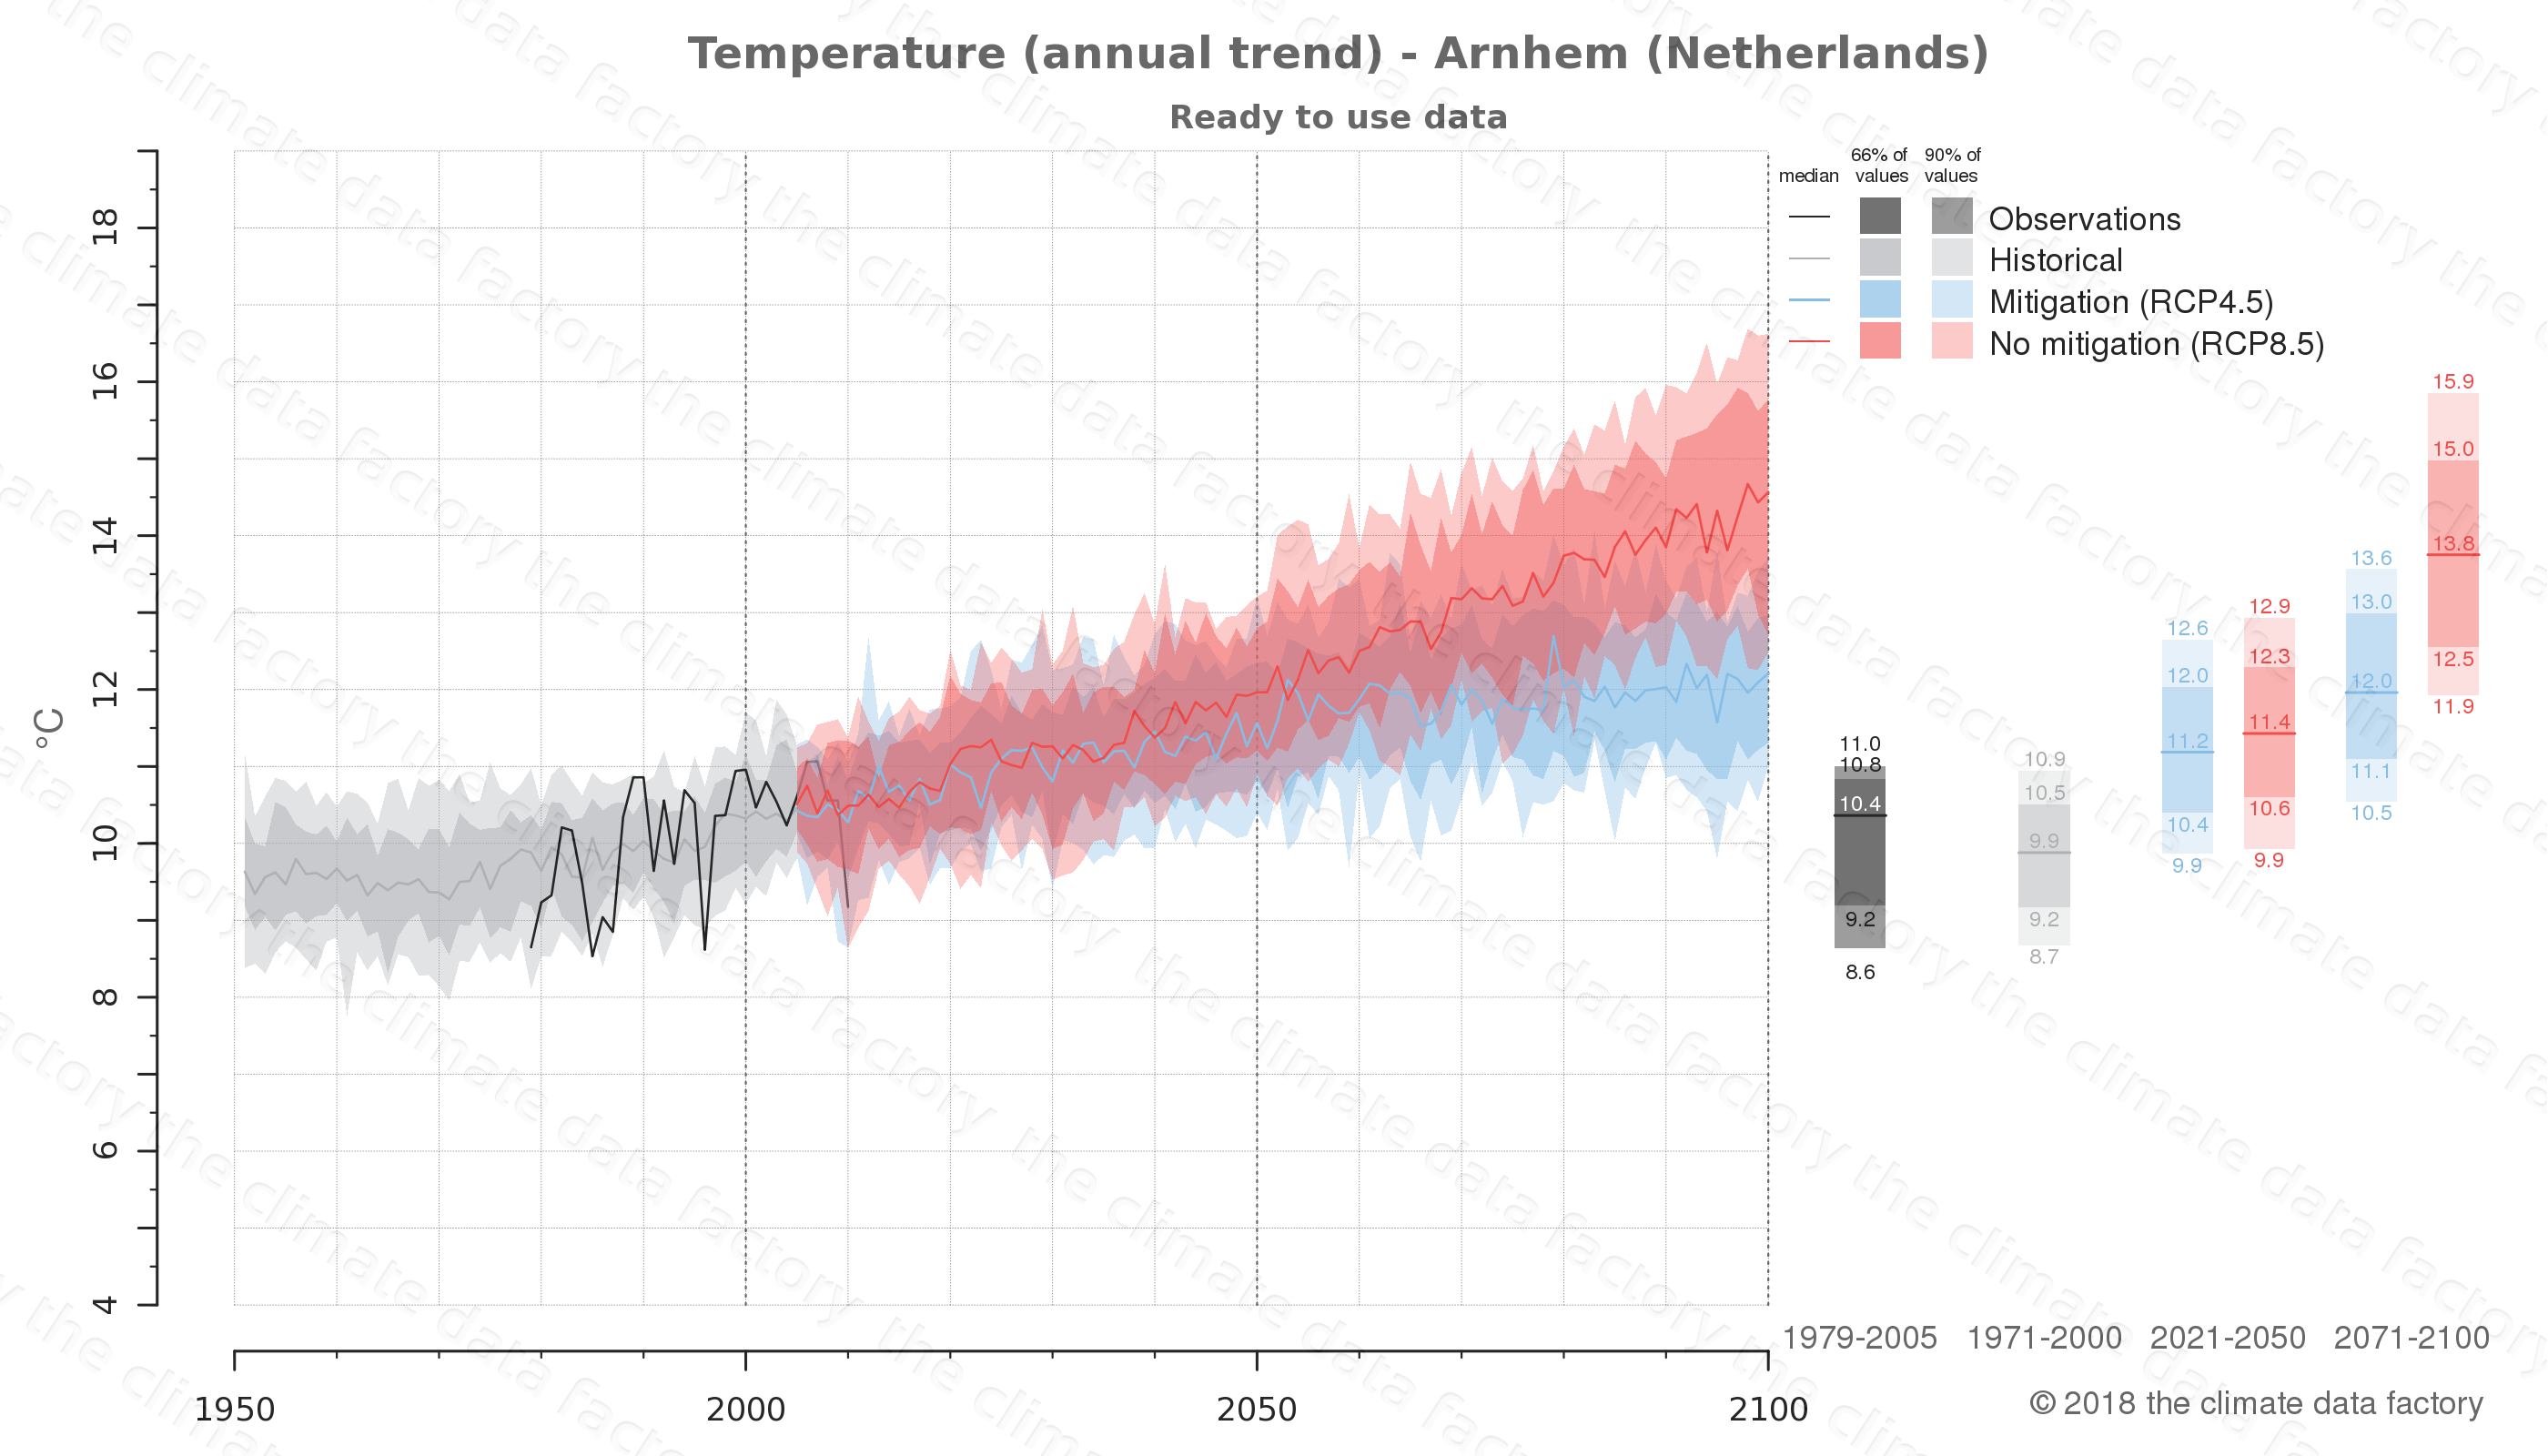 climate change data policy adaptation climate graph city data temperature arnhem netherlands